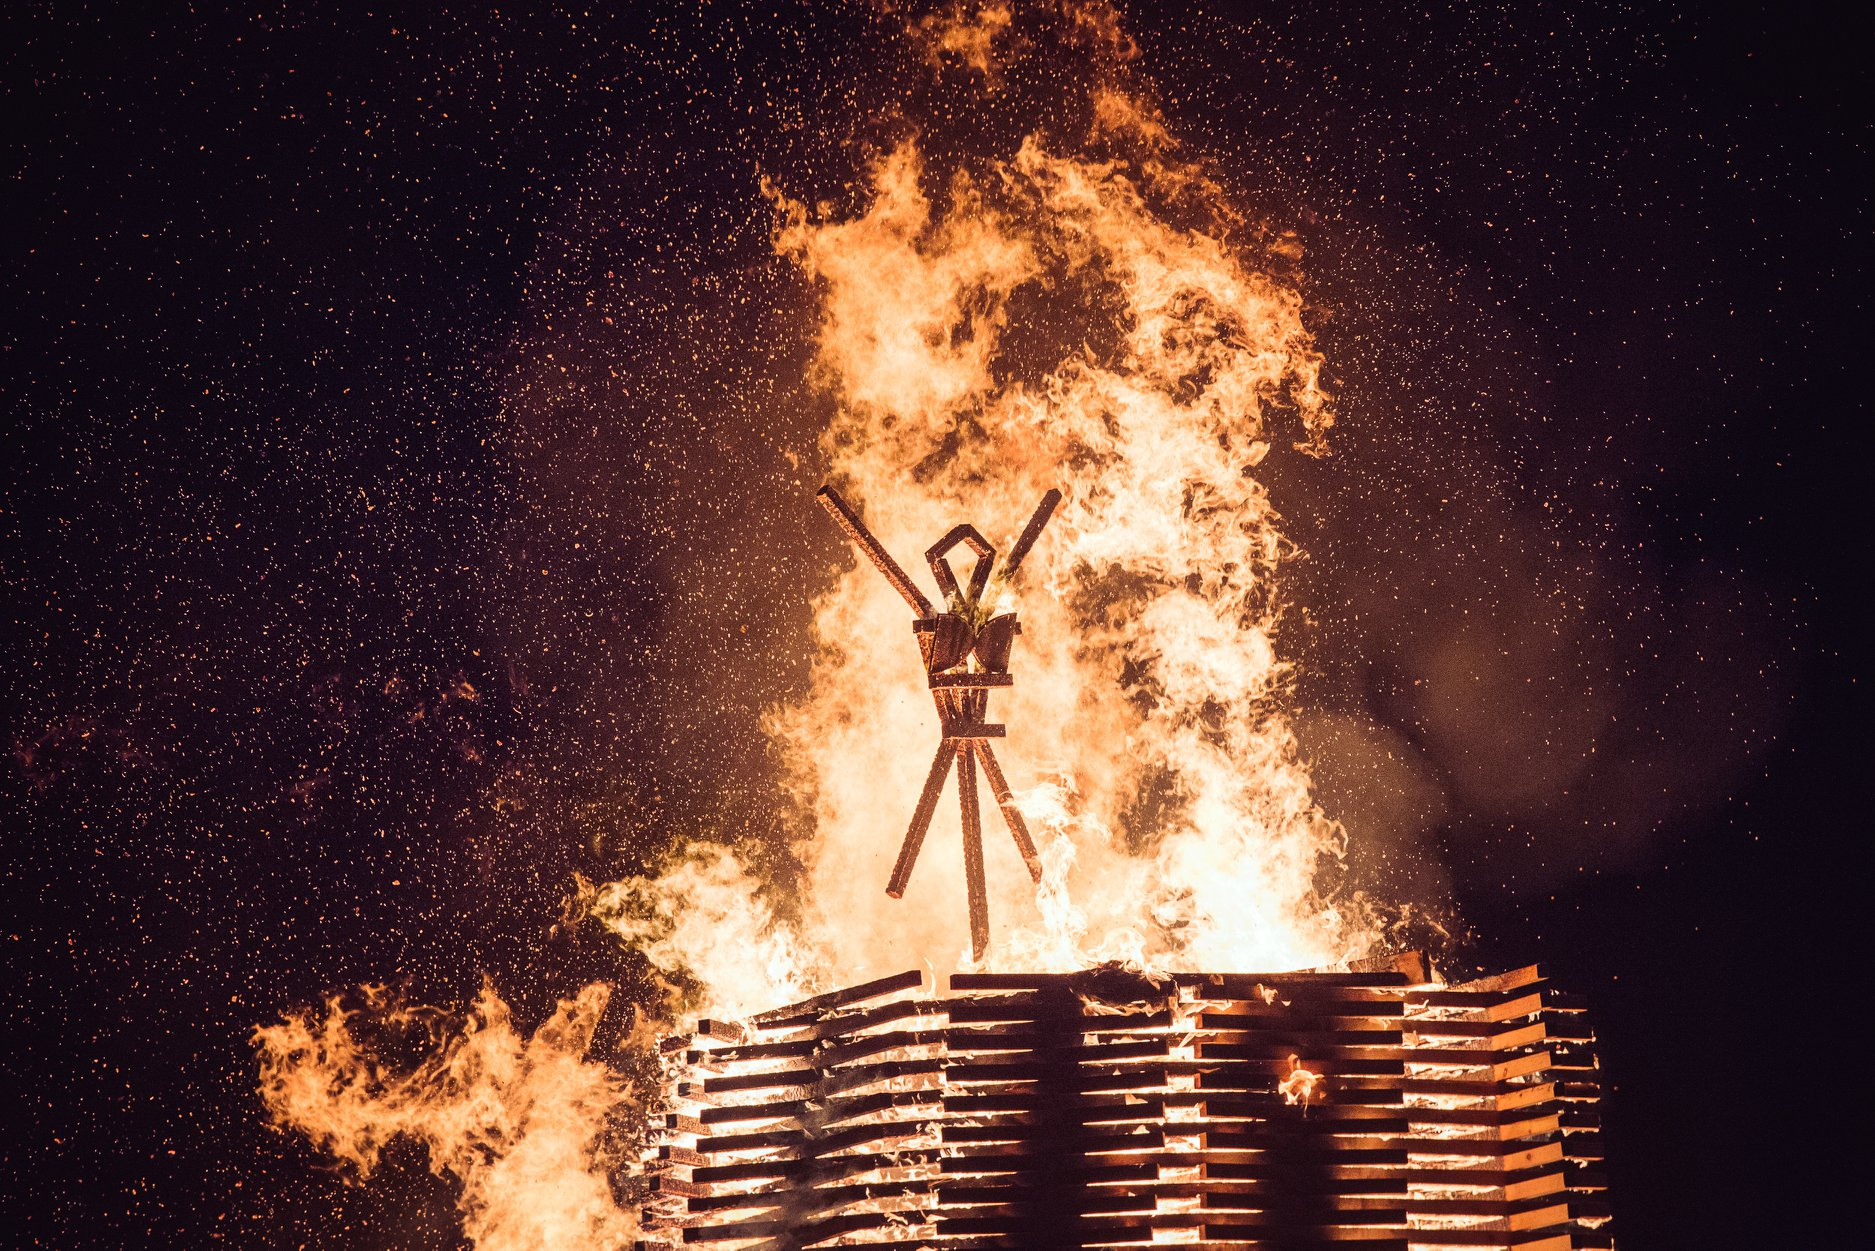 In May of 2018, we were delighted to be approached by the organizers of Otherworld (Vancouver Island's regional Burning Man event) with a request to design an Effigy, which would burn on the second night of the 3-day festivities.